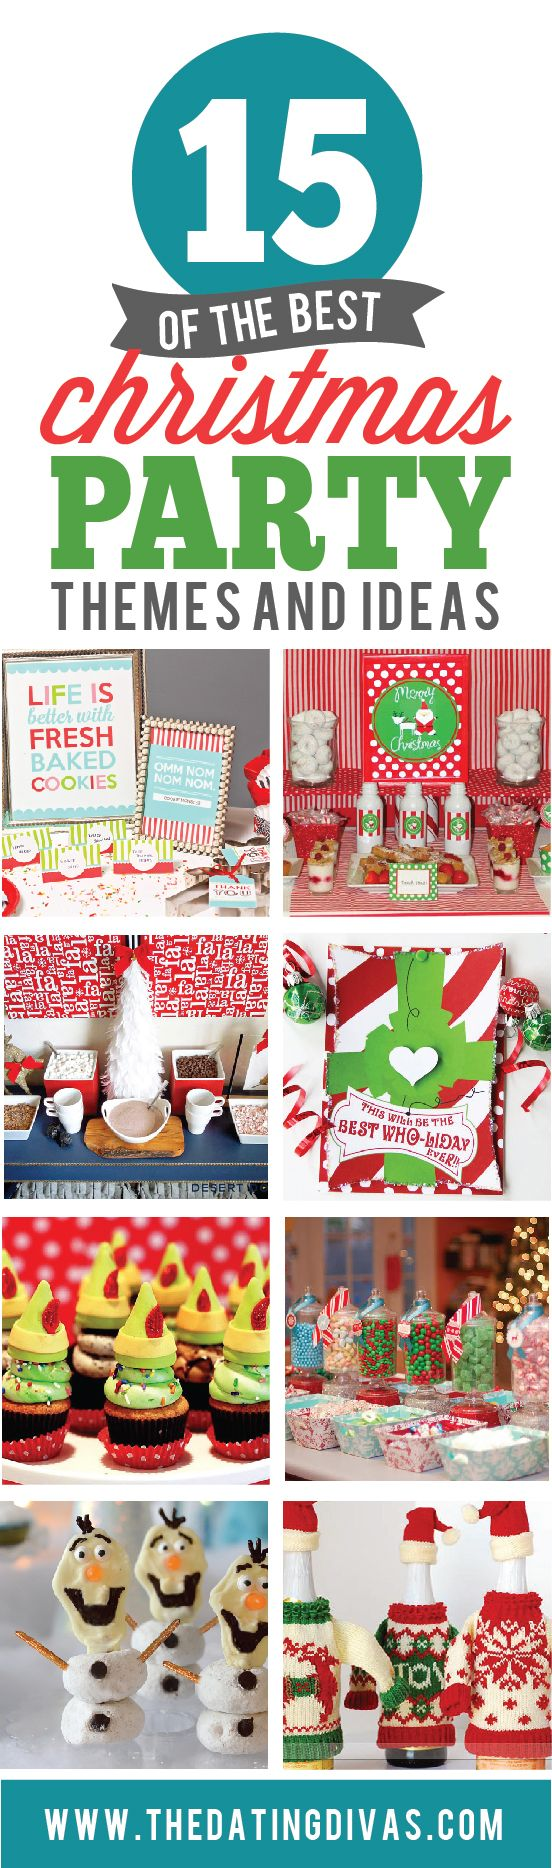 15 Christmas Party themes to make your holiday season unforgettable! www.TheDatingDivas.com